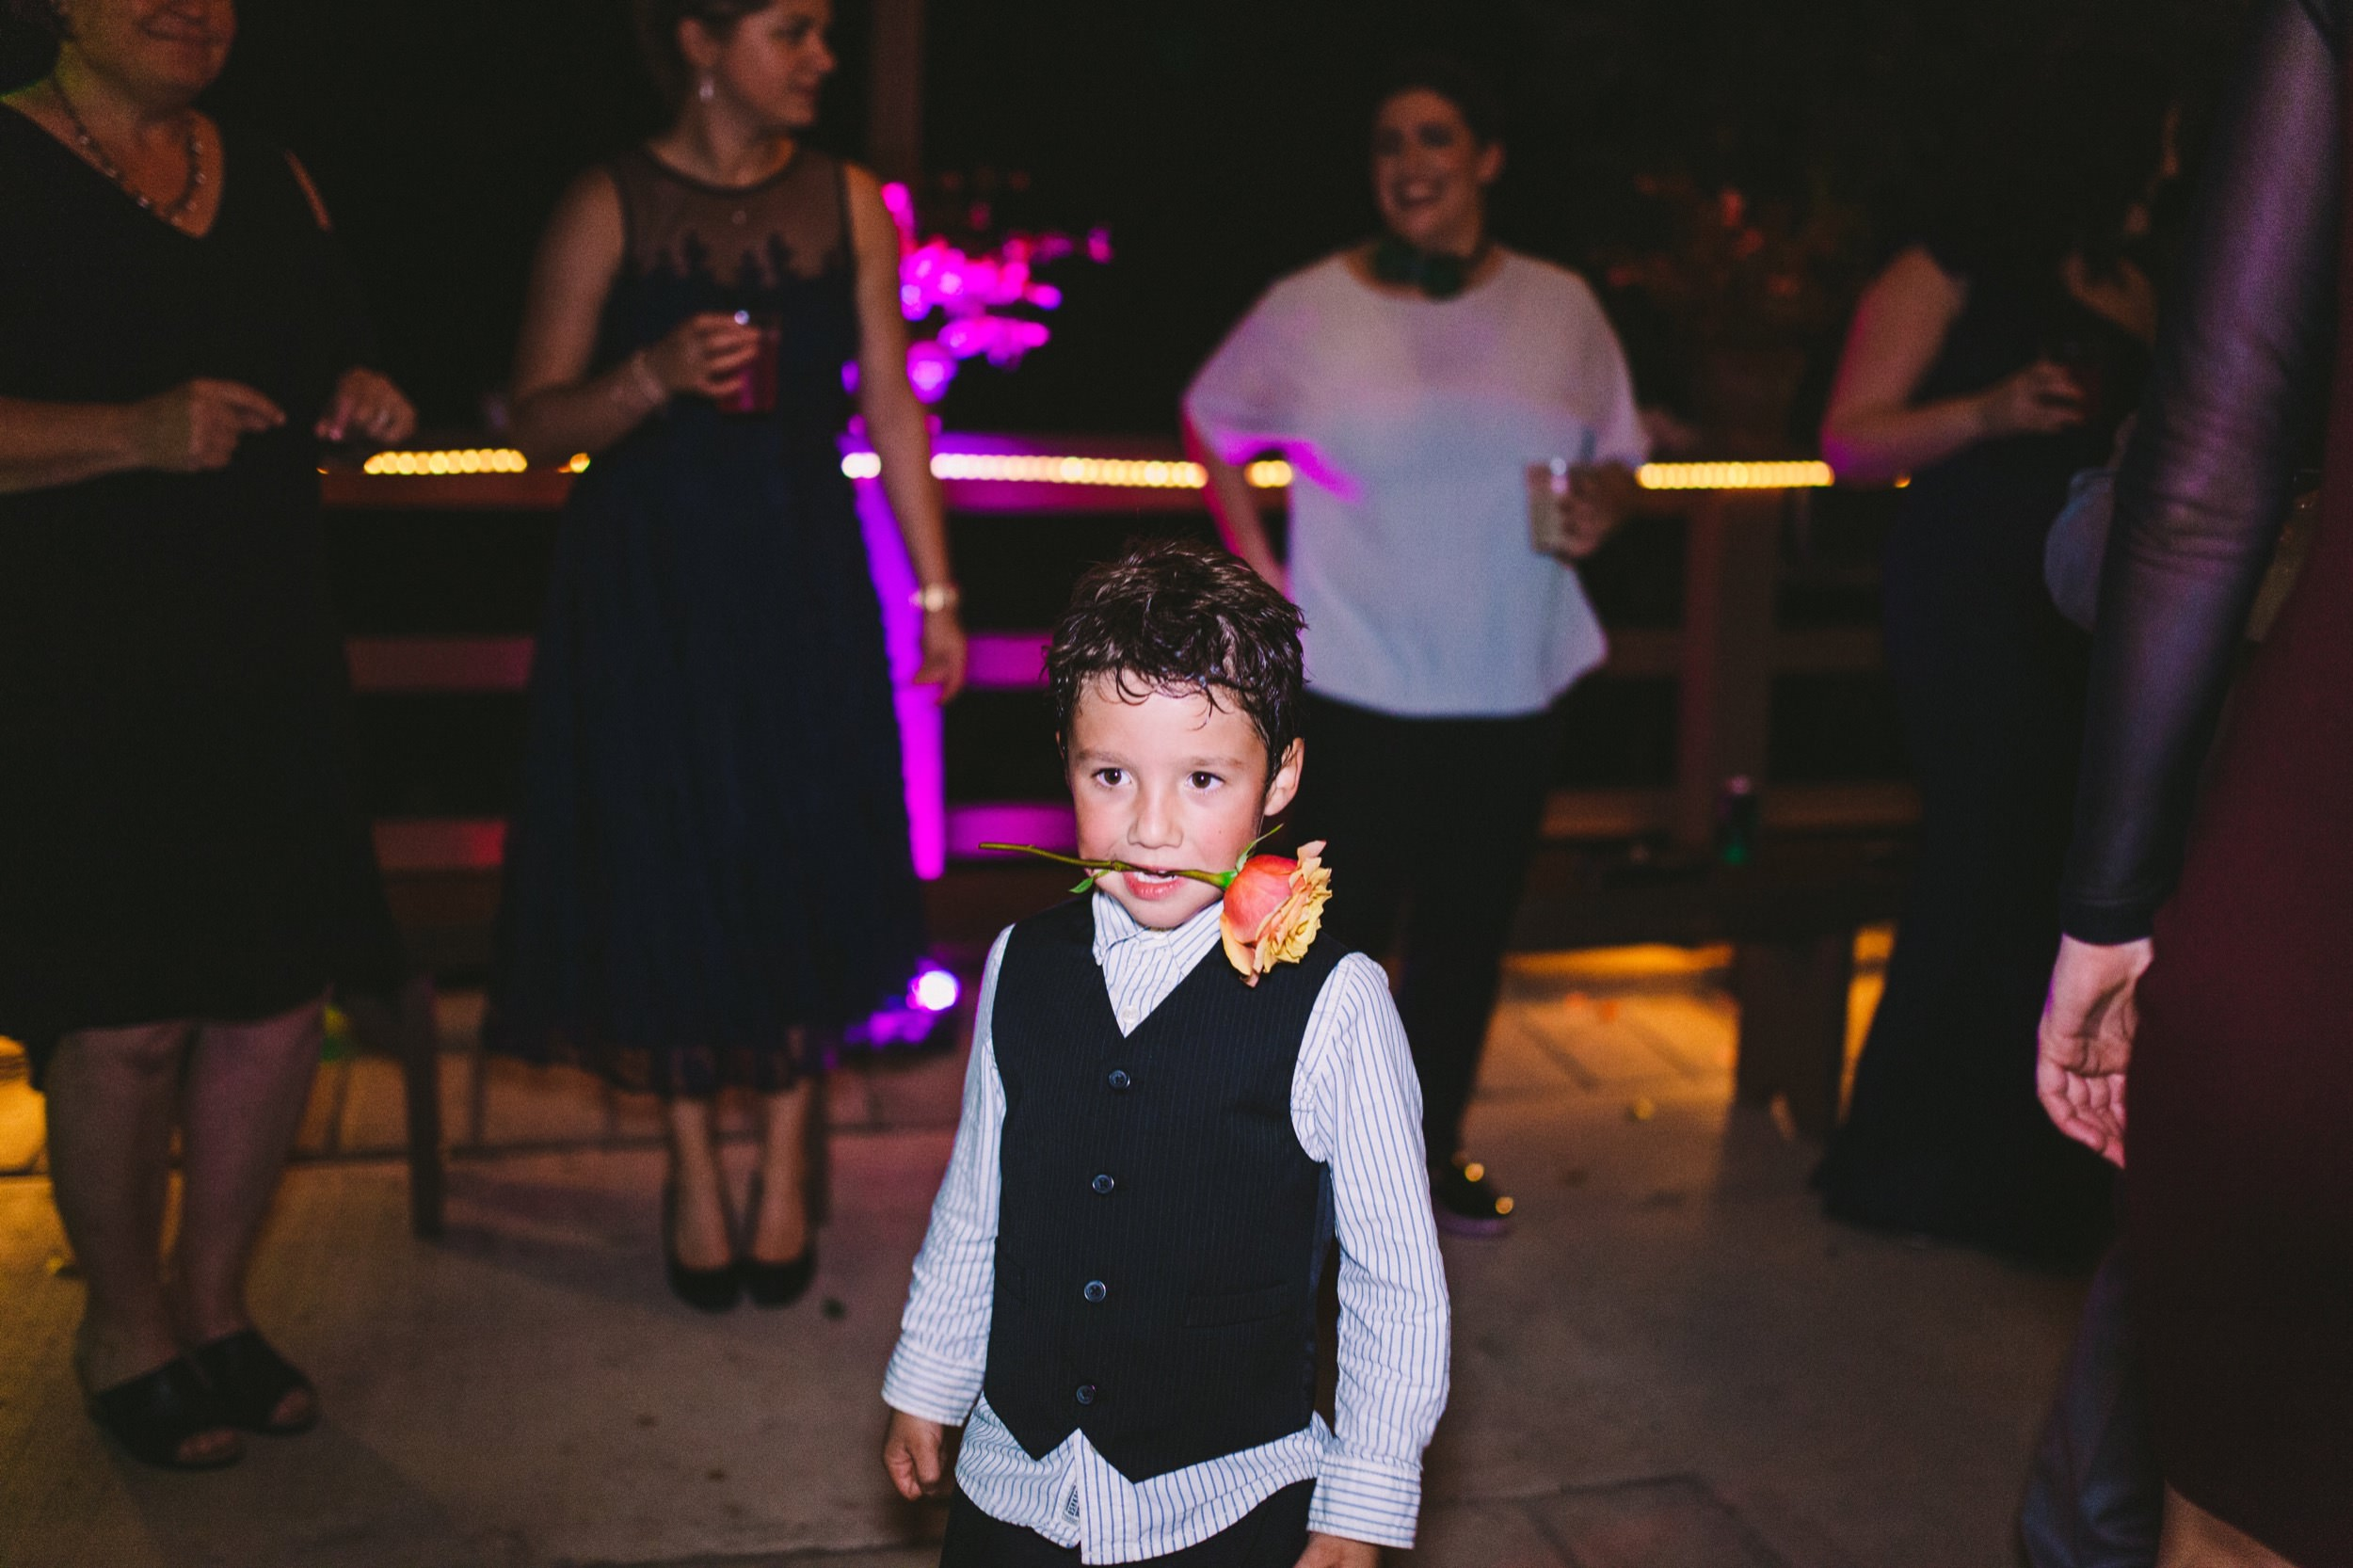 Cute Kid Dancing with Rose in Mouth at Wedding